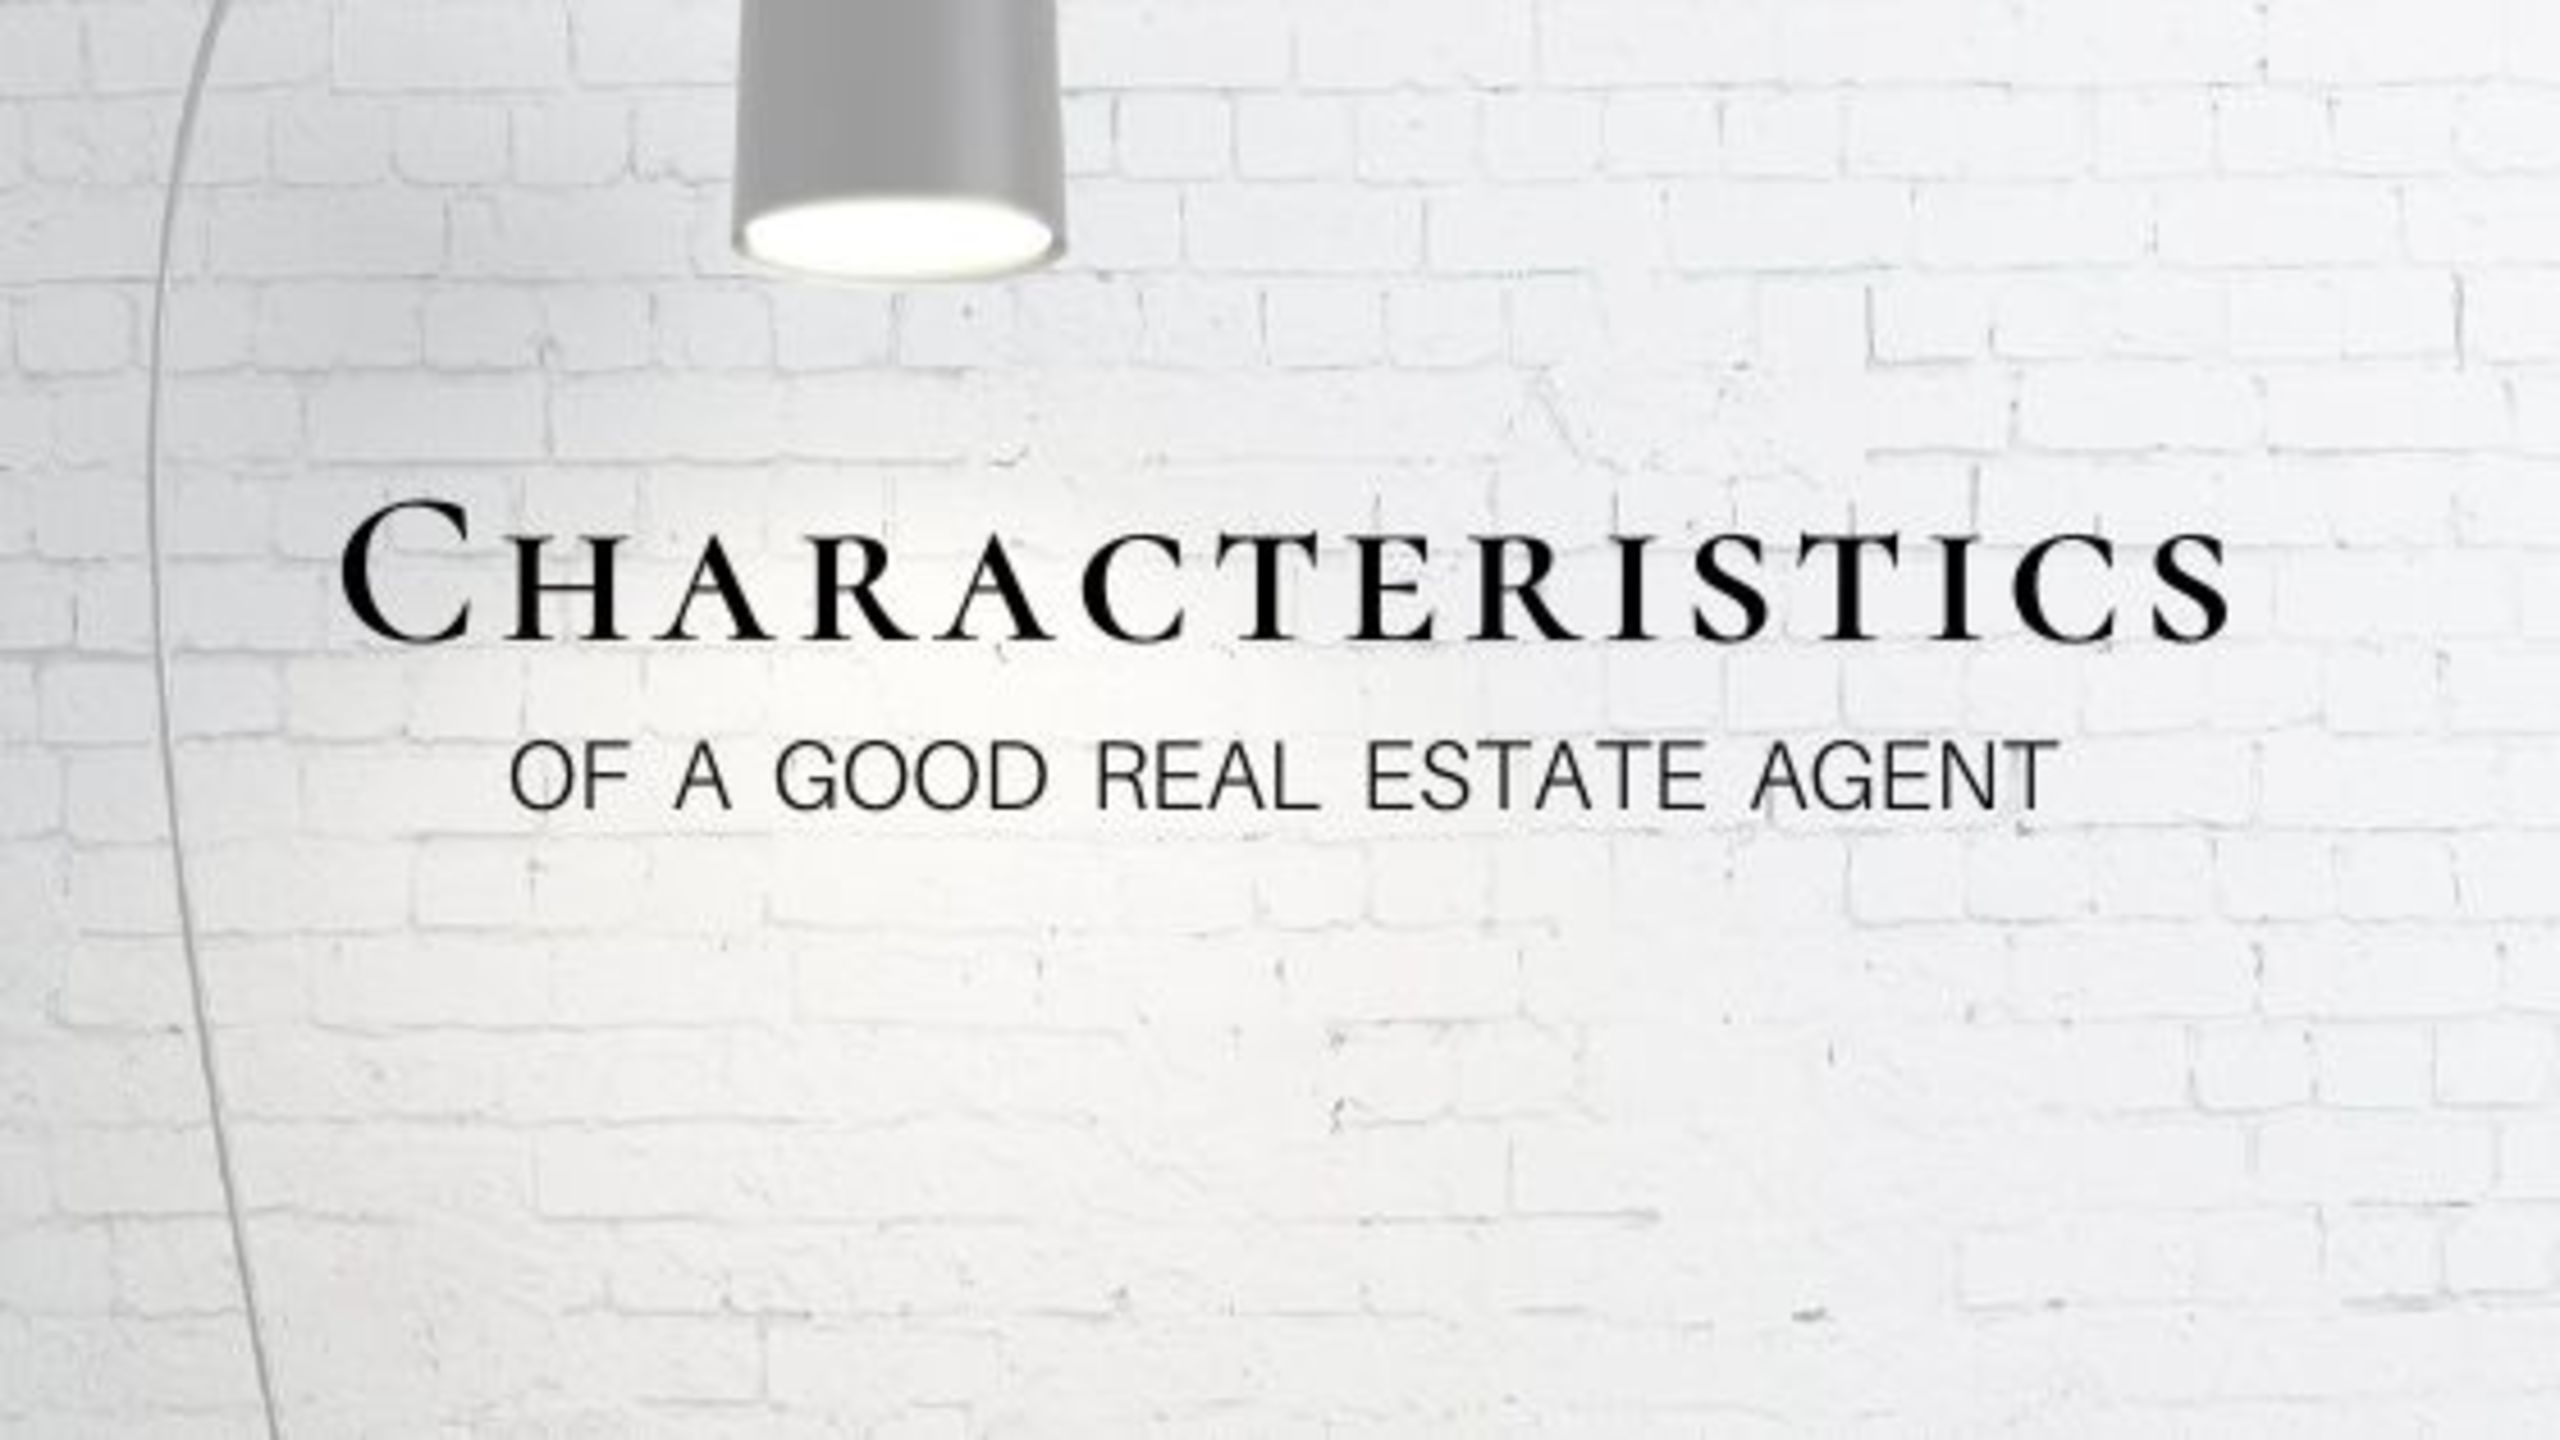 What should you be looking for in an agent?